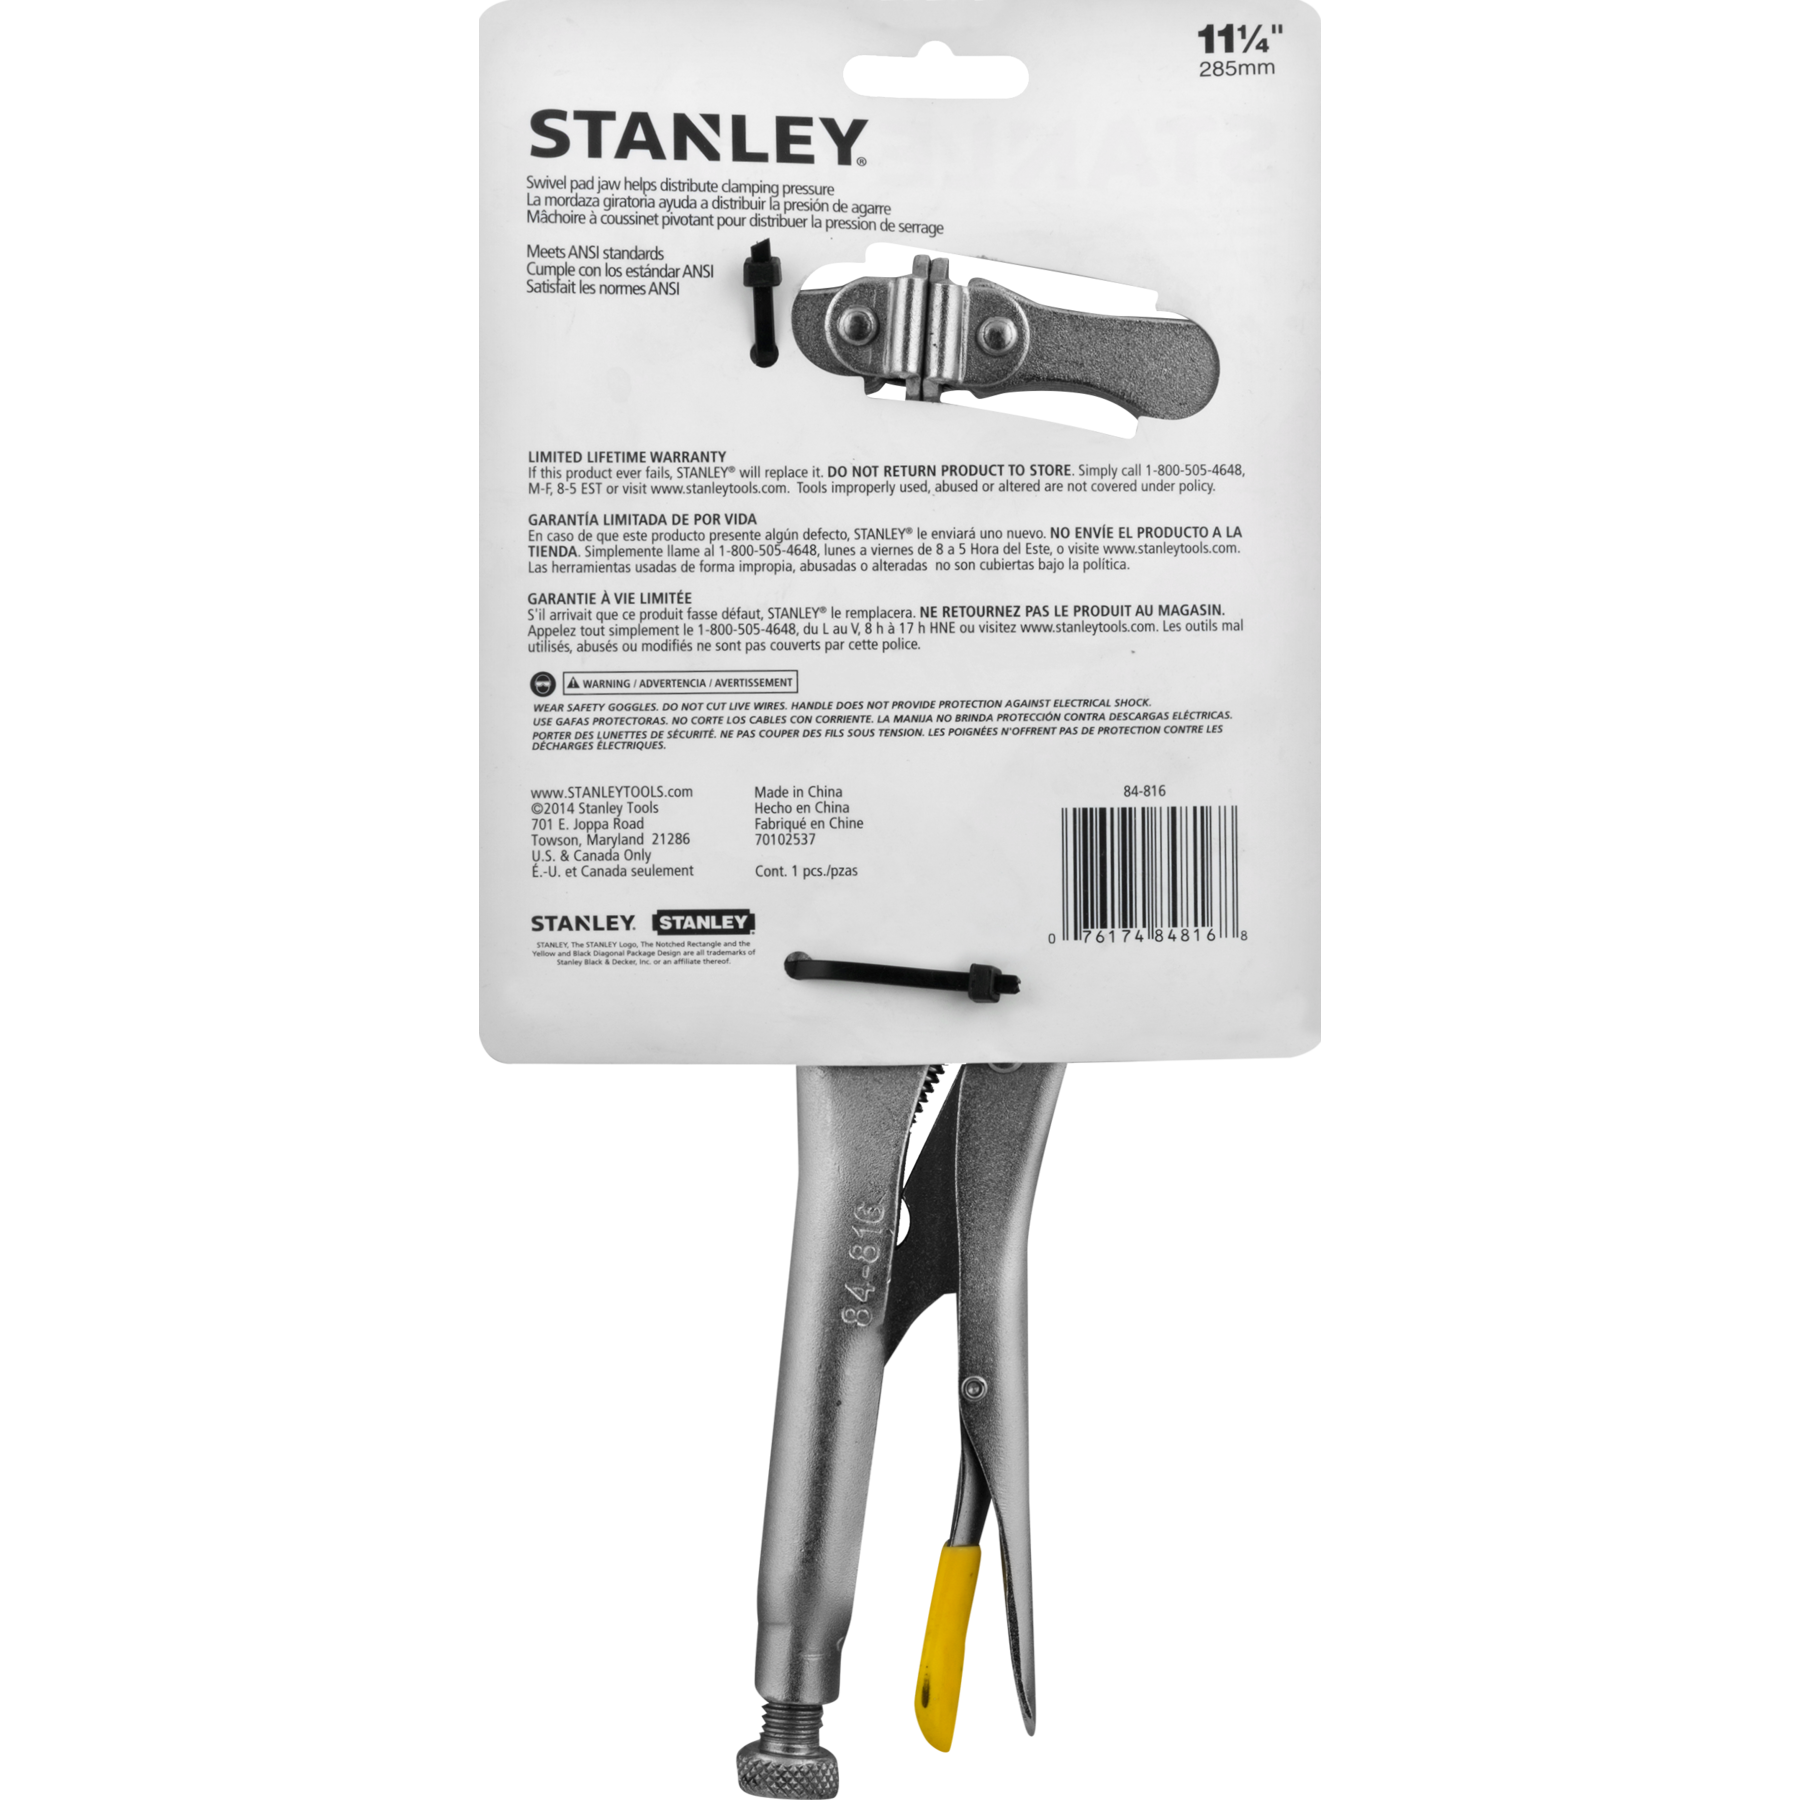 Stanley Locking C - Clamp Pliers 11 1/4', 1.0 CT